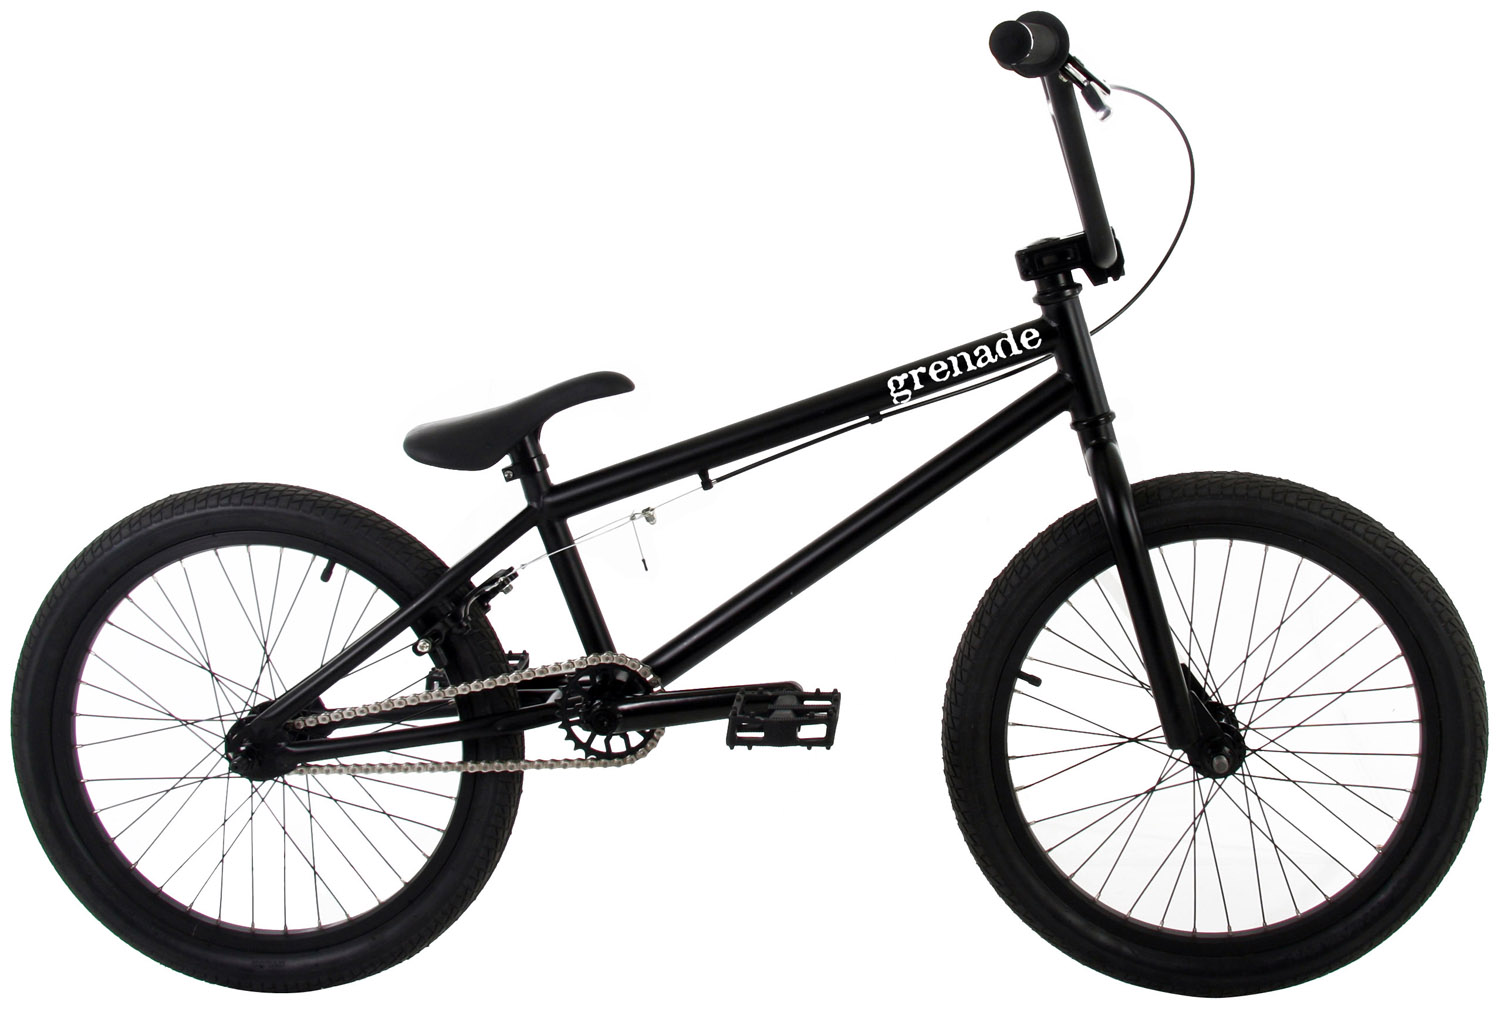 "BMX The 2013 Grenade Stealth is the top-of-the-line in Grenade's lineup of ""entry level"" street/trail BMX bikes, but as you can see, the Stealth is not your standard entry level bike with its 100% Cromoly Frame, Fork, and Handlebar and 25/9 Micro Drive System and its features do not stop there. The Stealth features Framed Gun Grips with Alloy Grip Locks, Framed Detonator Alloy Stem with weight saving cut-outs, Framed Pipe Bomb 175mm Tubular Cromoly Cranks with Cromoly Spindle, Framed Mid Sealed Bottom Bracket, Framed 25 Tooth Alloy Sprocket, KMC HL710 Half Link chain, Framed Platform Pedals, Framed Cannon 14mm Alloy Hubset with a 9 Tooth Driver in the rear, Framed Flak Jacket Double Wall Alloy Rims, and Framed Launcher Saddle/Post Combo Seat for weight reduction. The Grenade Stealth Bike is as at home on the street as it is on the trails, with its agile but stable geometry and its quality packed components.These Grenade BMX bikes come without decals applied. Each bike is shipped with a decal packet, containing a number of decals of different styles and colors. This allows the rider to customize the bike to their liking. Key Features of the Grenade Stealth BMX Bike 20"": FRAME: 100% CroMo w/20.4"" Top Tube FORKS: 100% CroMo Forks BARS: 100% CroMo 8"" Rise Bars GRIPS: Framed Gun Grips w/Grip Locks STEM: Framed Detonator Alloy Stem w/Cutouts HEADSET: 1 1/8"" Threadless Headset BRAKE LEVER: Framed Alloy Lever BRAKE: Framed Alloy U-Brakes CRANKS: Framed Pipe Bomb 175mm Tubular CroMo Cranks w/Sealed Bottom Bracket SPROCKET: Framed 25 Tooth Alloy Sprocket CHAIN: KMC Half Link HL710 PEDALS: Framed Platform Pedals FRONT HUB: Framed Cannon 14mm 36 Hole Alloy Hub REAR HUB: Framed Cannon 14mm 36 Hole Alloy Hub w/9 Tooth Driver RIMS: Framed Flak Jacket Double Wall Alloy Rims TIRES: Framed WD 20"" X 2.125"" Tires SADDLE: Framed Launcher Saddle/Post Combo SEAT POST: Framed Launcher Saddle/Post Combo CLAMP: Framed Alloy Clamp PEGS: Framed Steel Pegs (2 PCS) TOP TUBE: 20.4"" HEAD TUBE ANGLE: 74degrees SEAT TUBE: 9.5"" SEAT TUBE ANGLE: 71degrees CHAINSTAY: 14"" BB HEIGHT: 11.6"" APPROX WEIGHT: 25 lbs WHEELBASE: 36.25"" - $269.95"